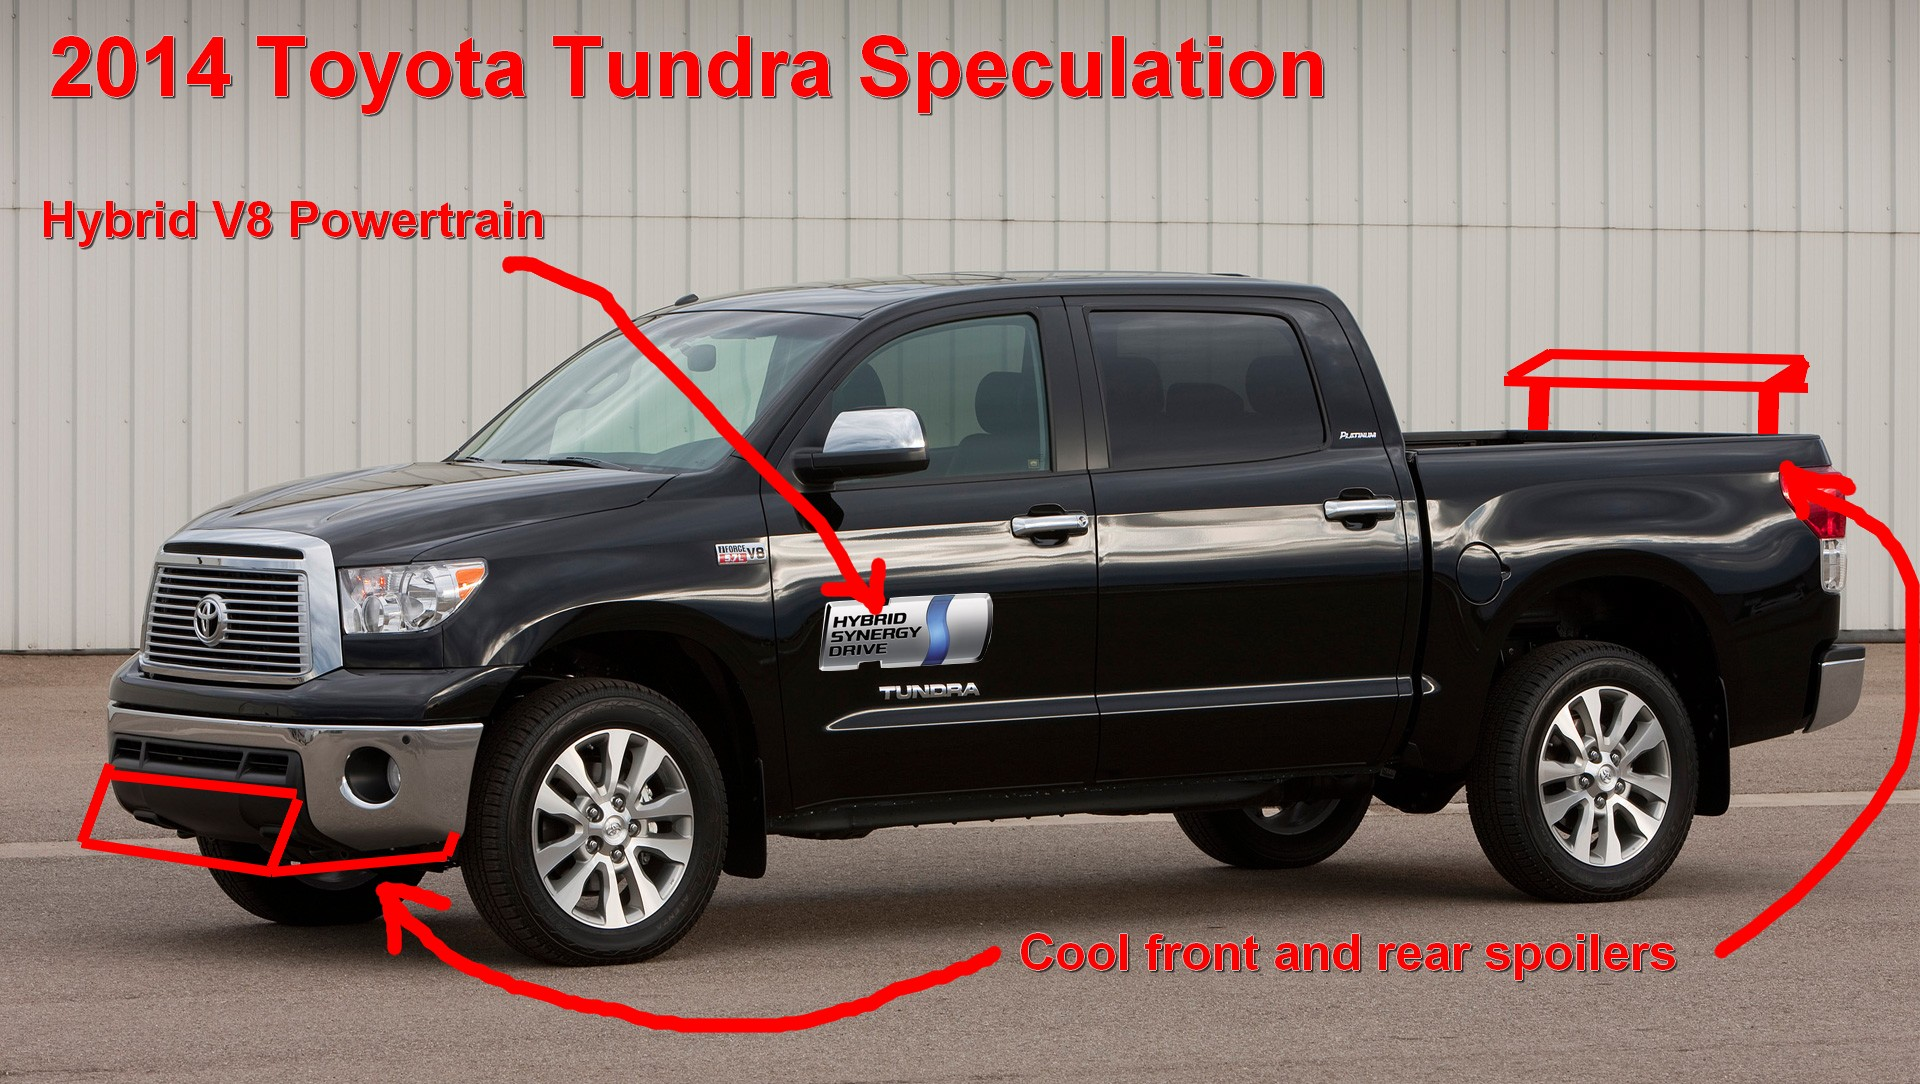 Toyota Tundra Redesign Coming to the Chicago Auto Show